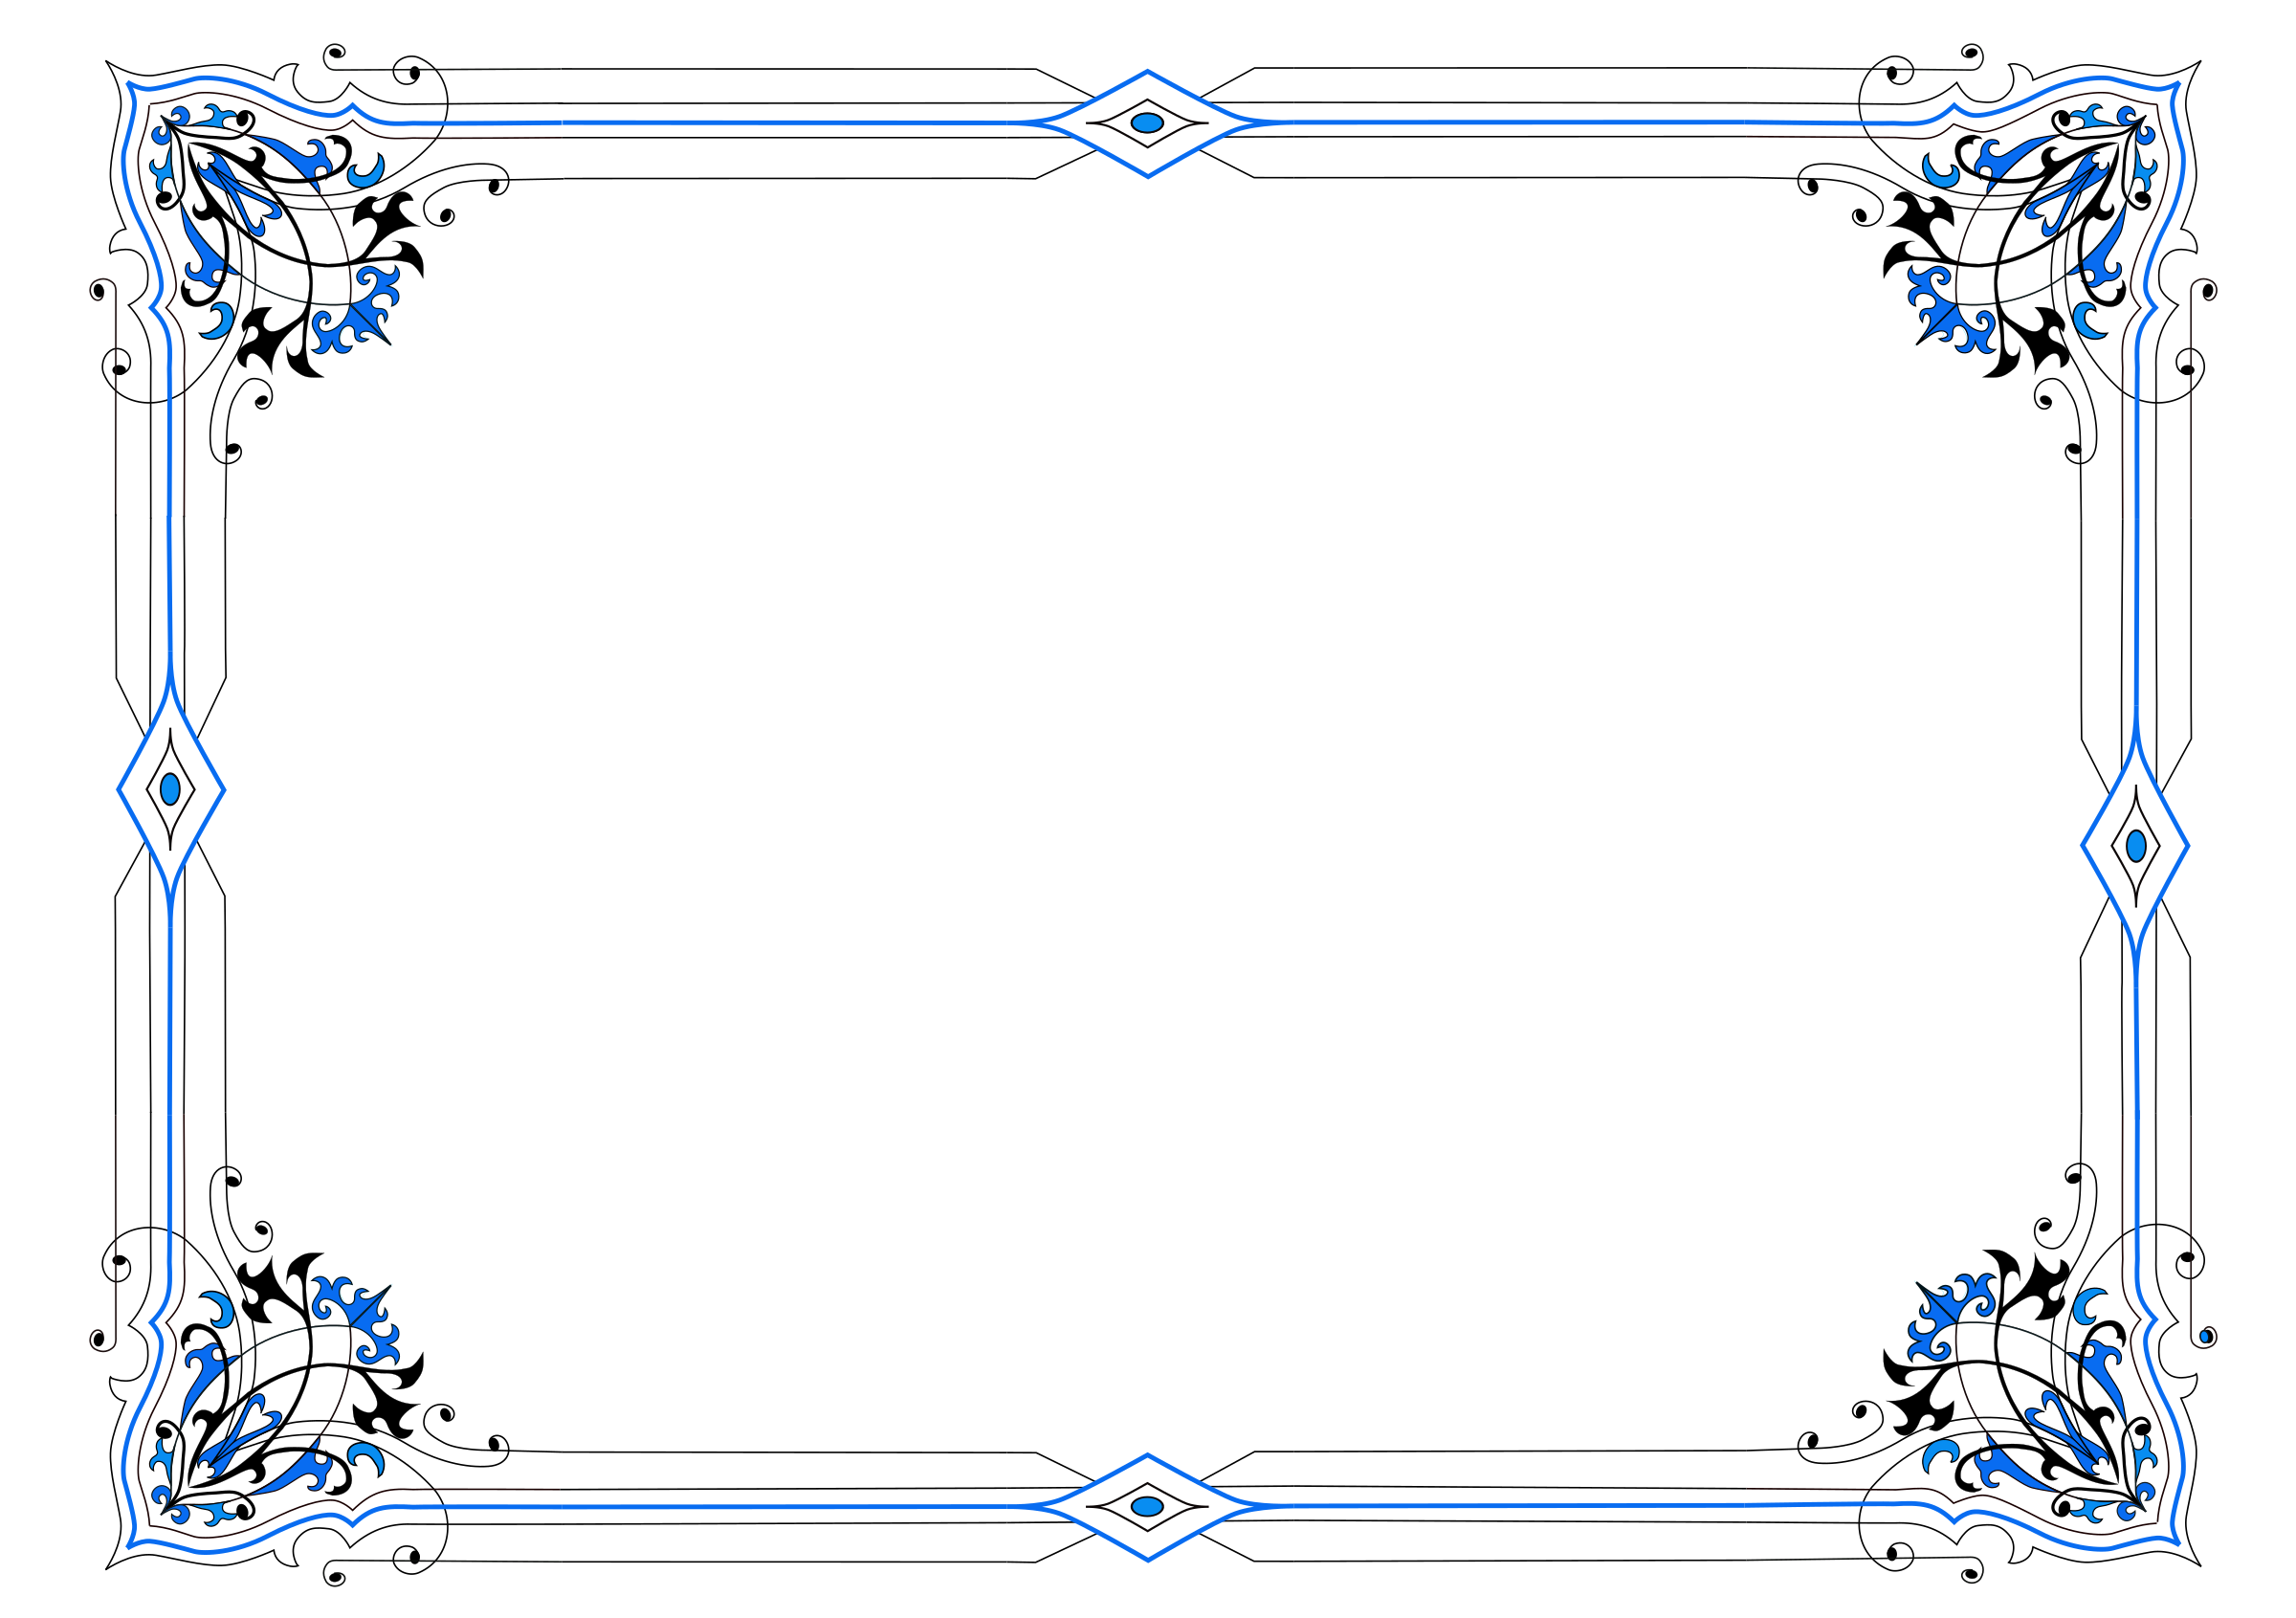 Blue borders png. Border variation in icons